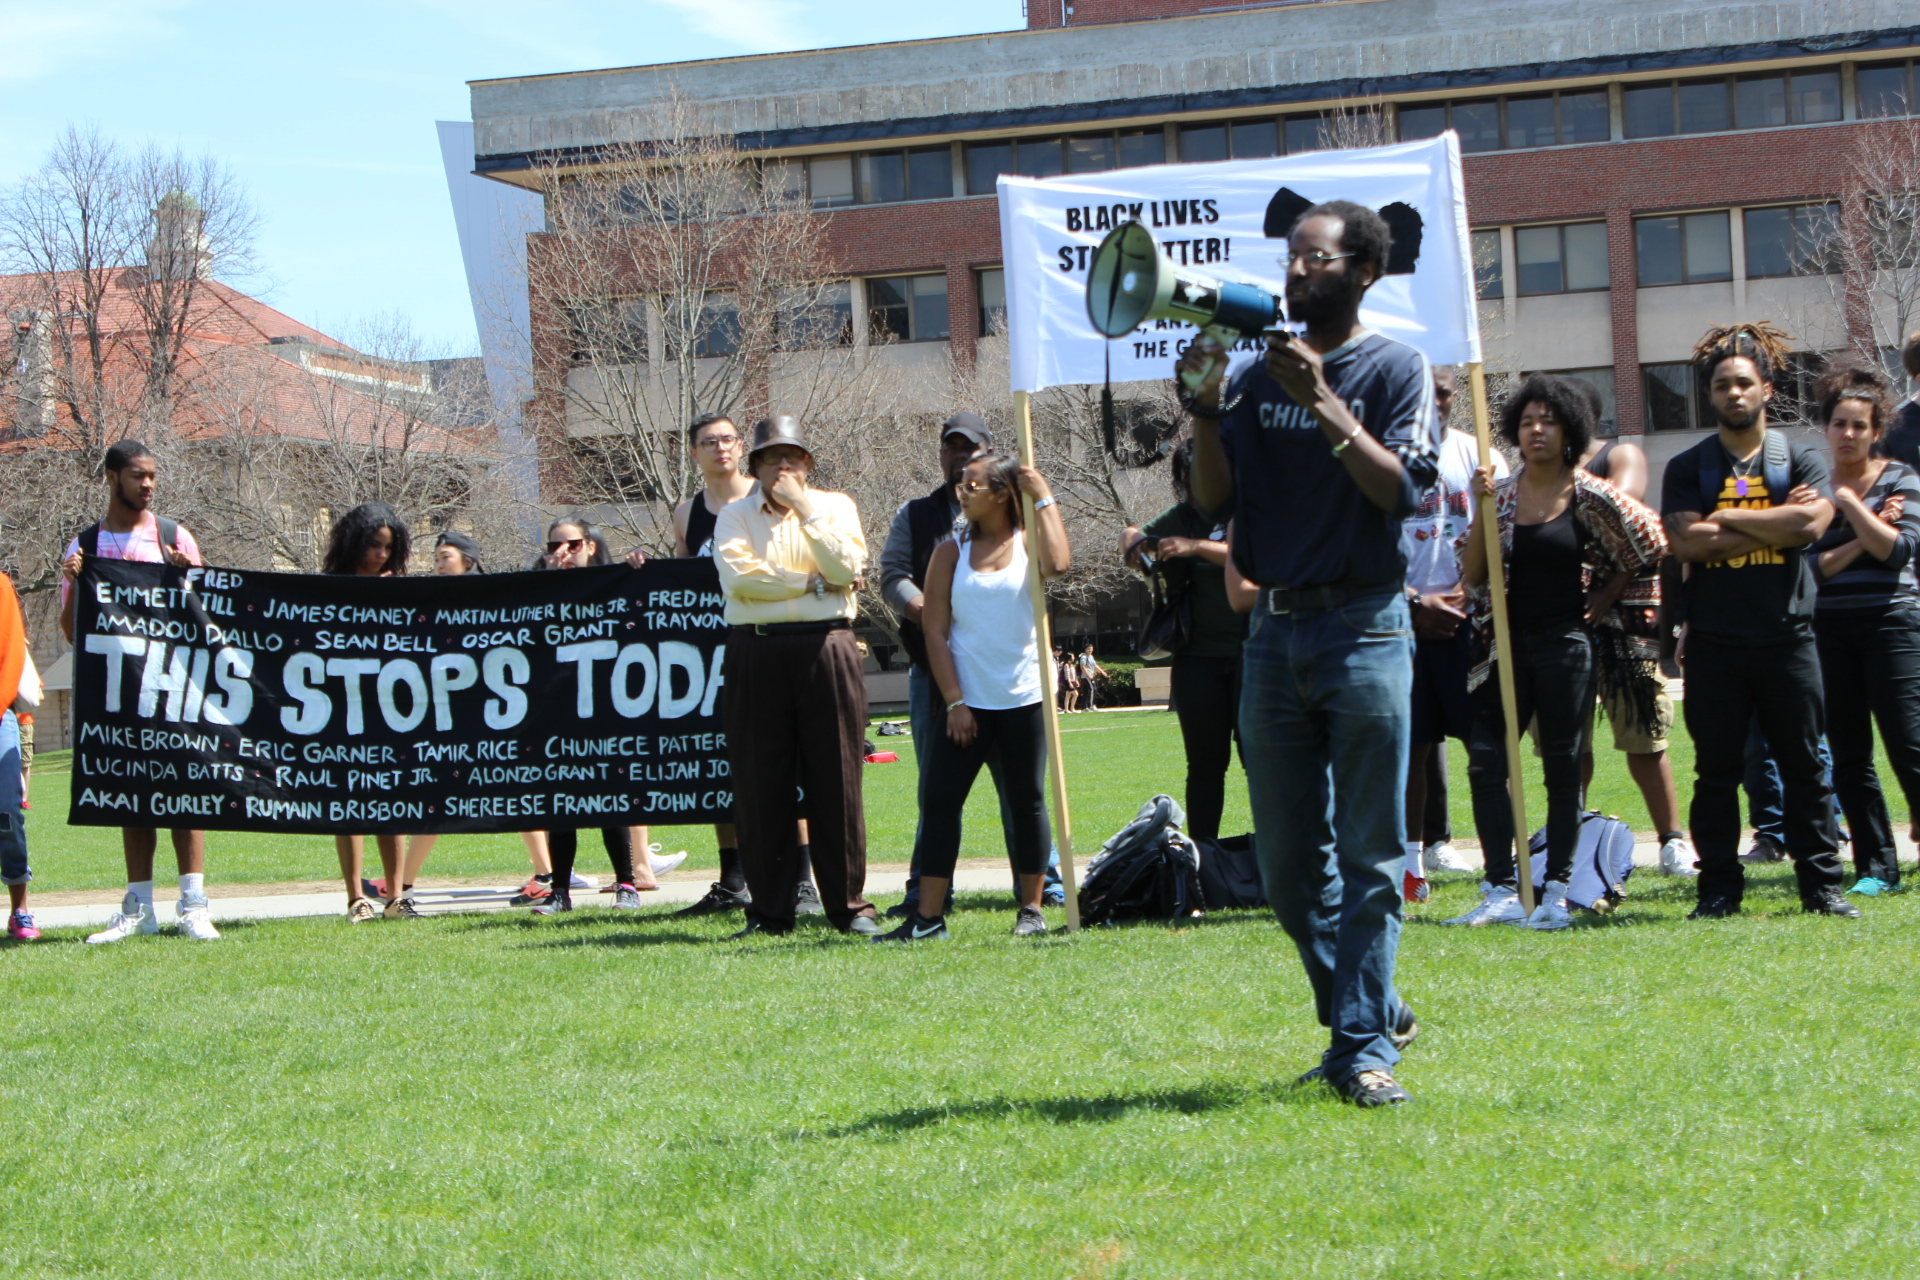 Aly Wane speaks on behalf of the Peace Council at a Black Lives Matter rally